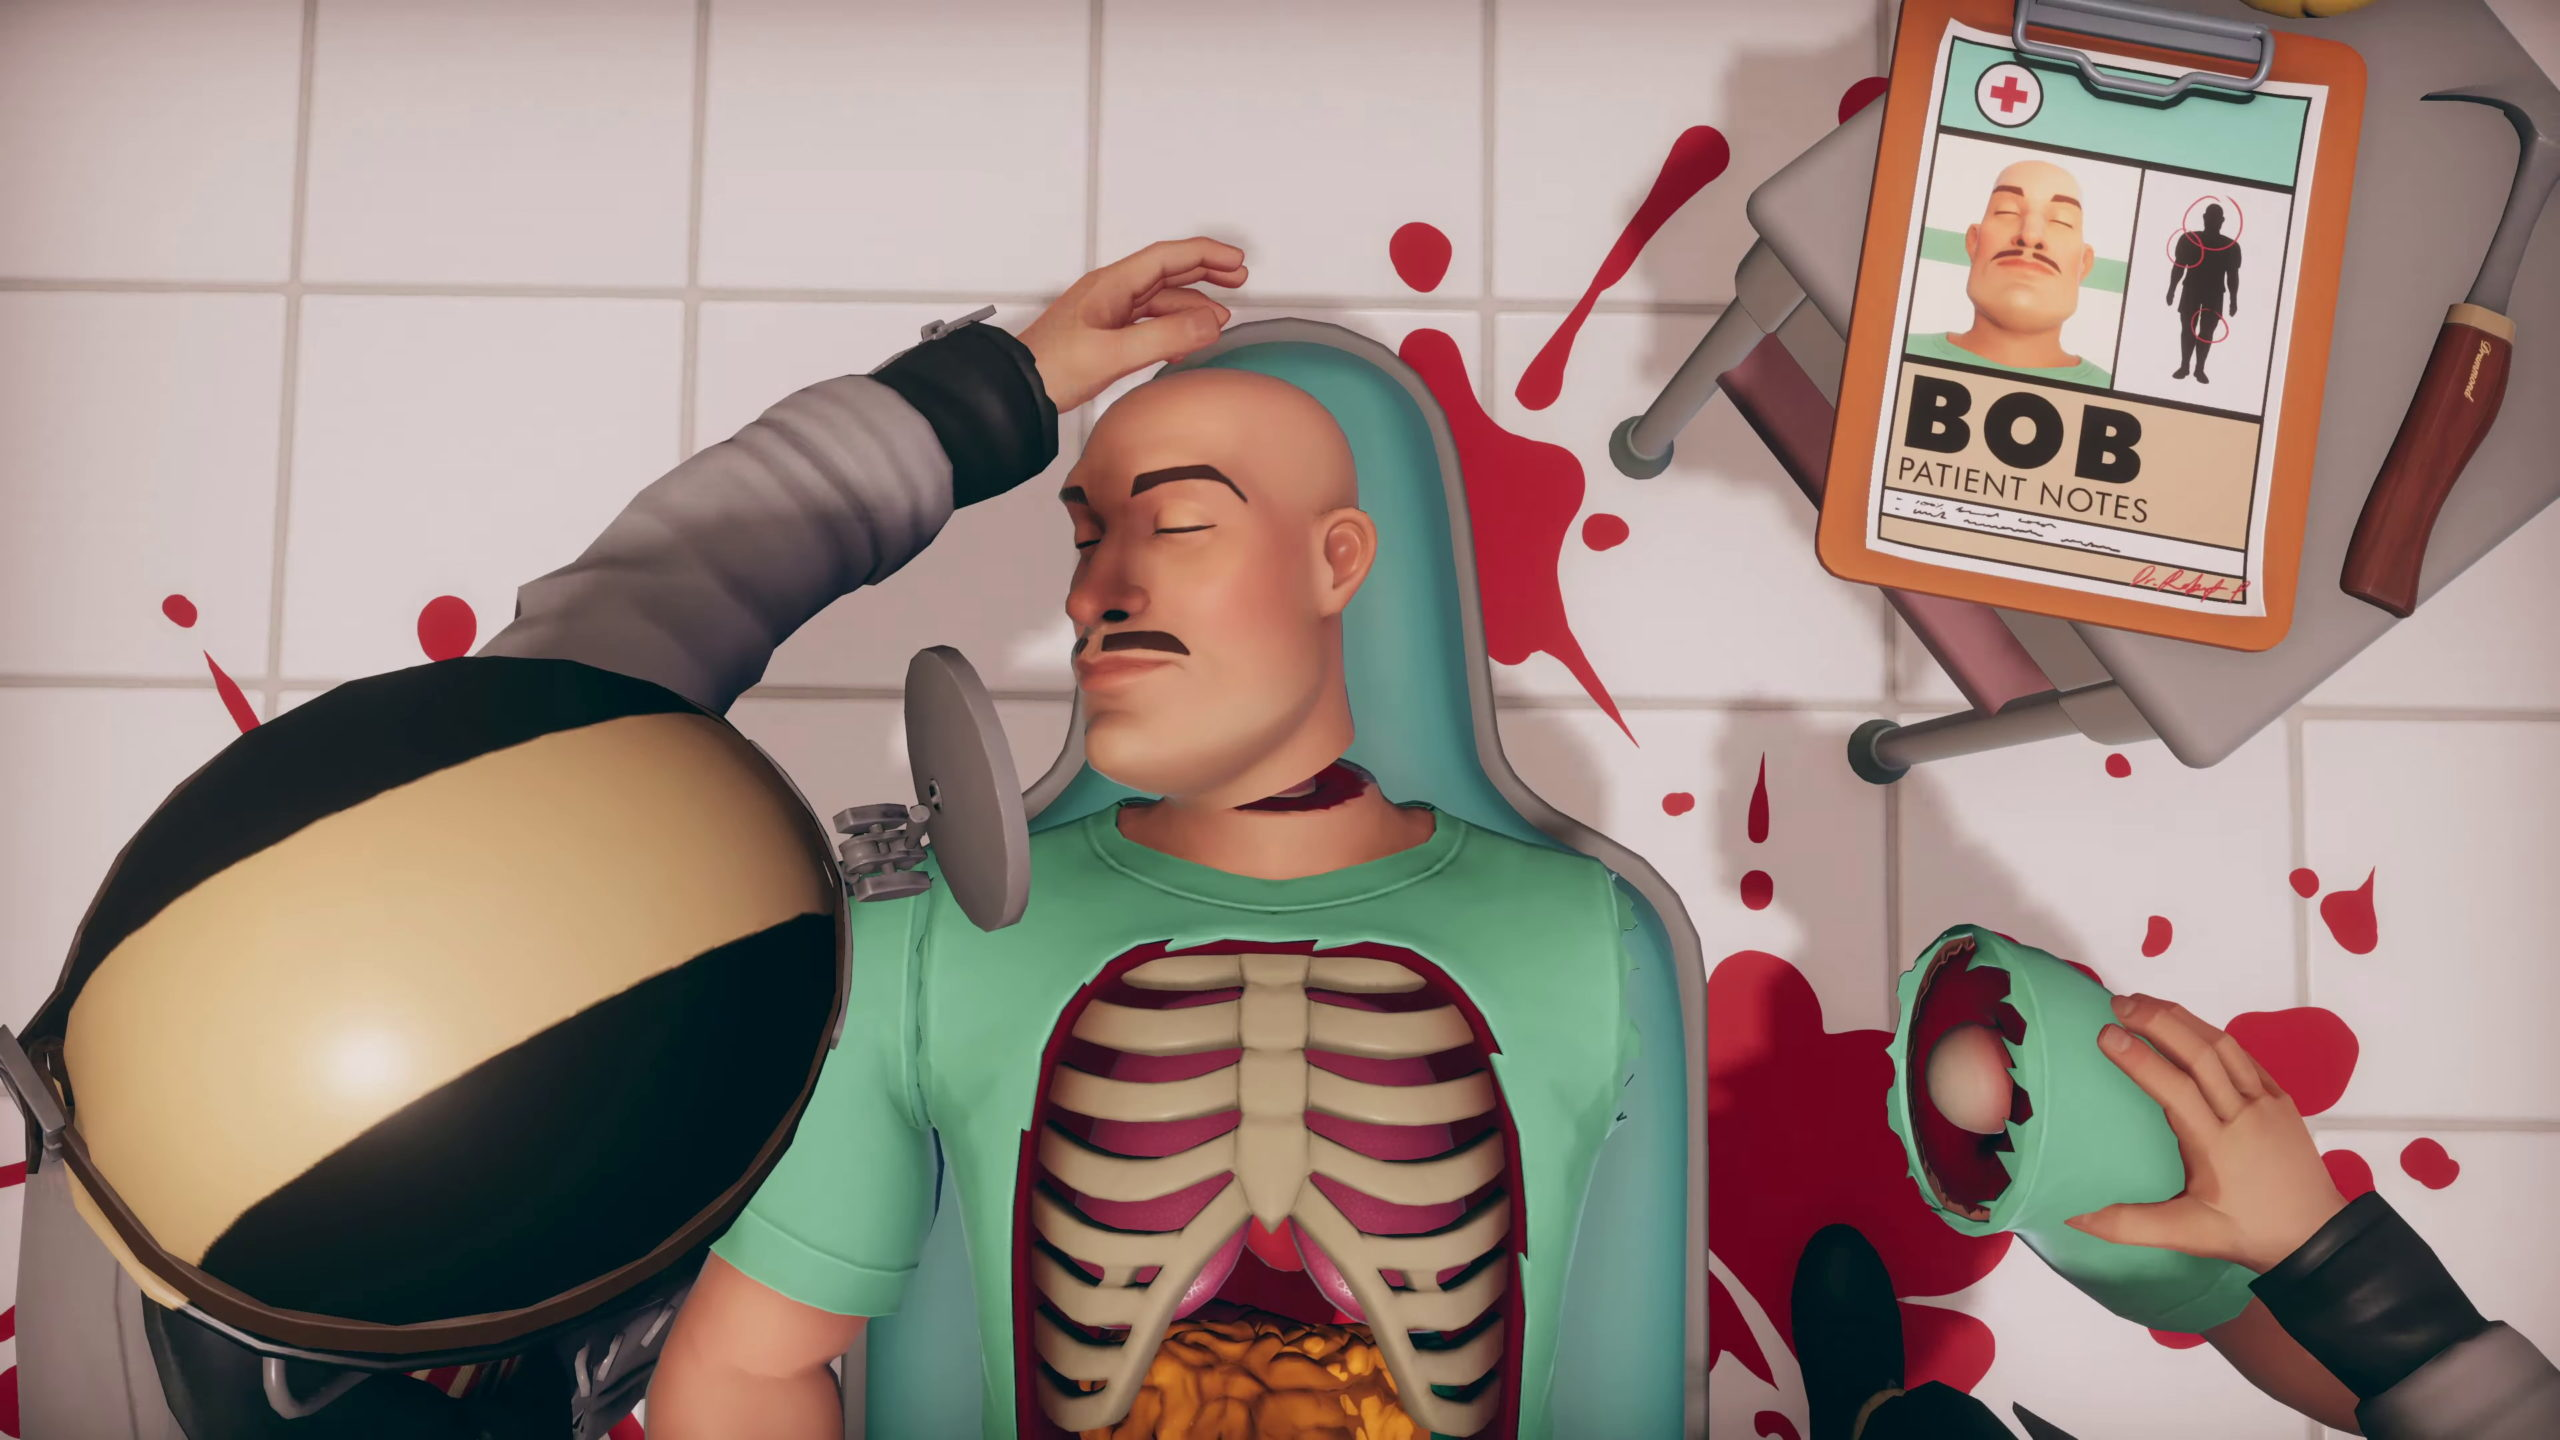 Surgeon Simulator 2 Review (PC) – Organ Grinder